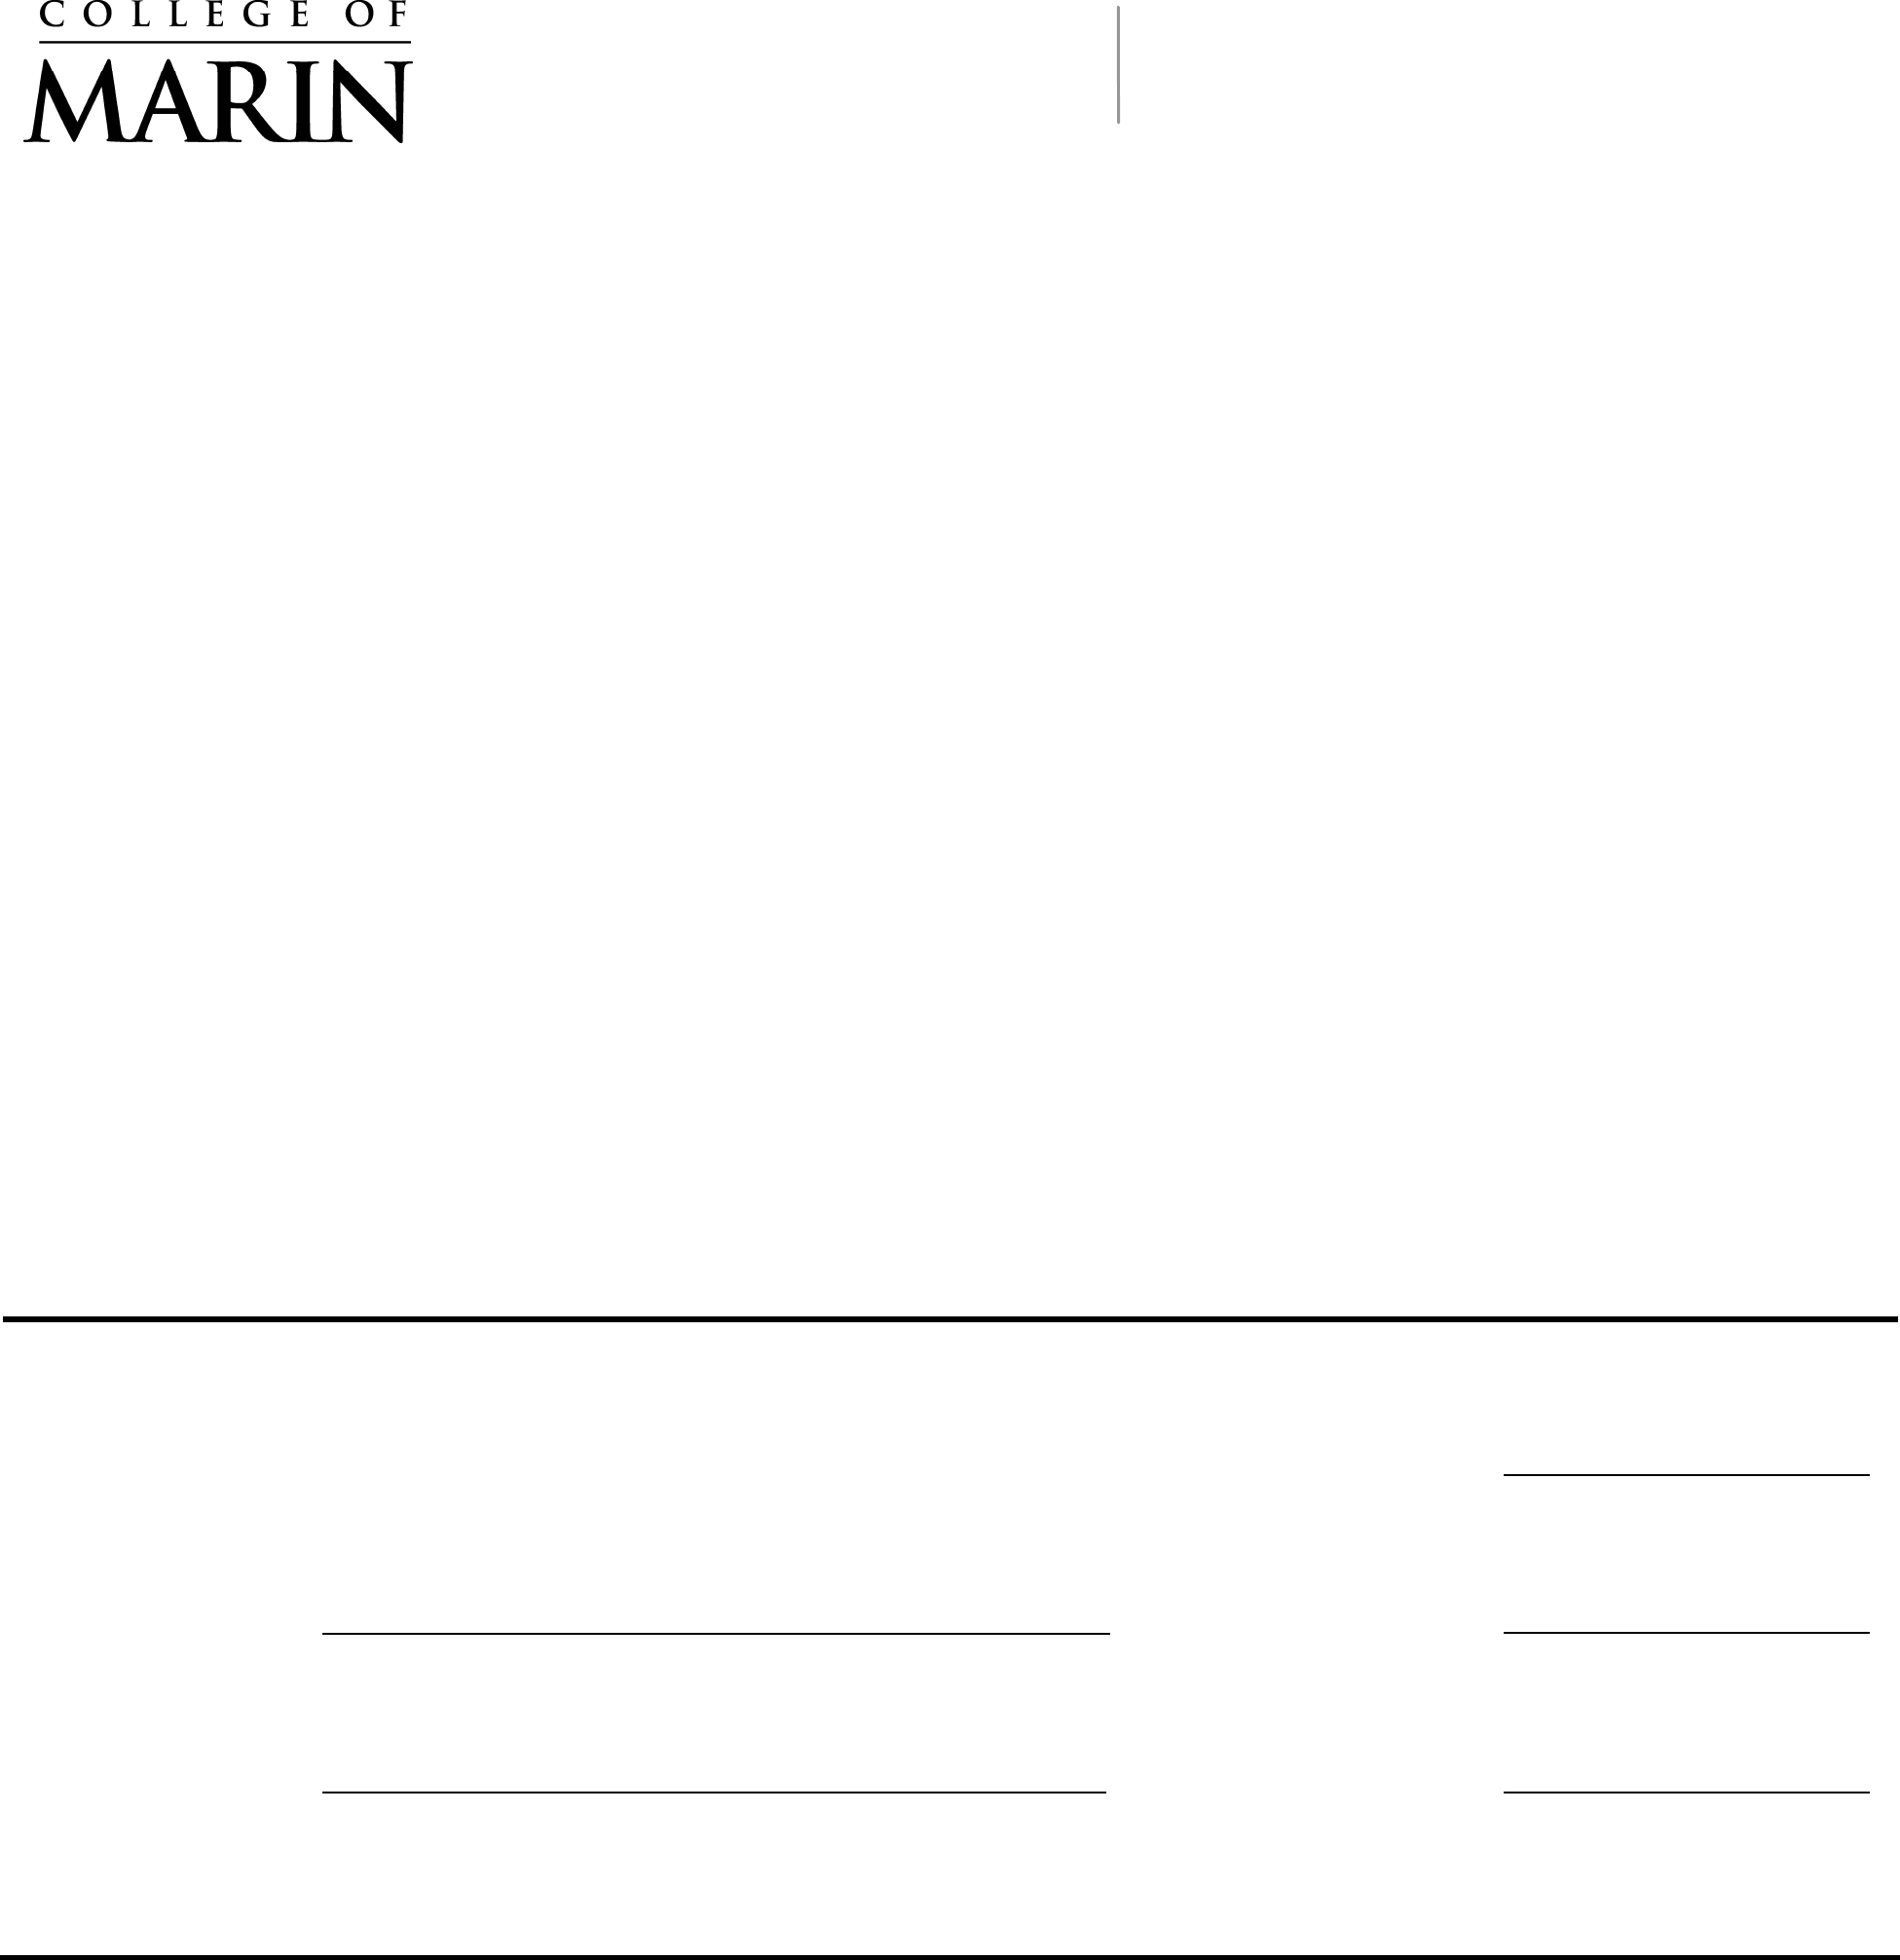 sample fax cover sheet college of marin free download